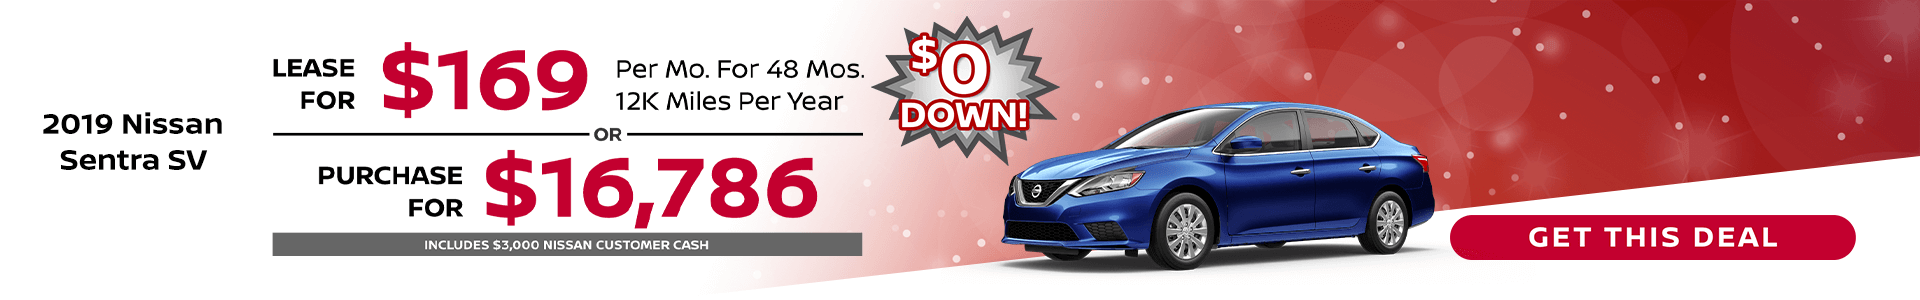 Sentra $169 Lease